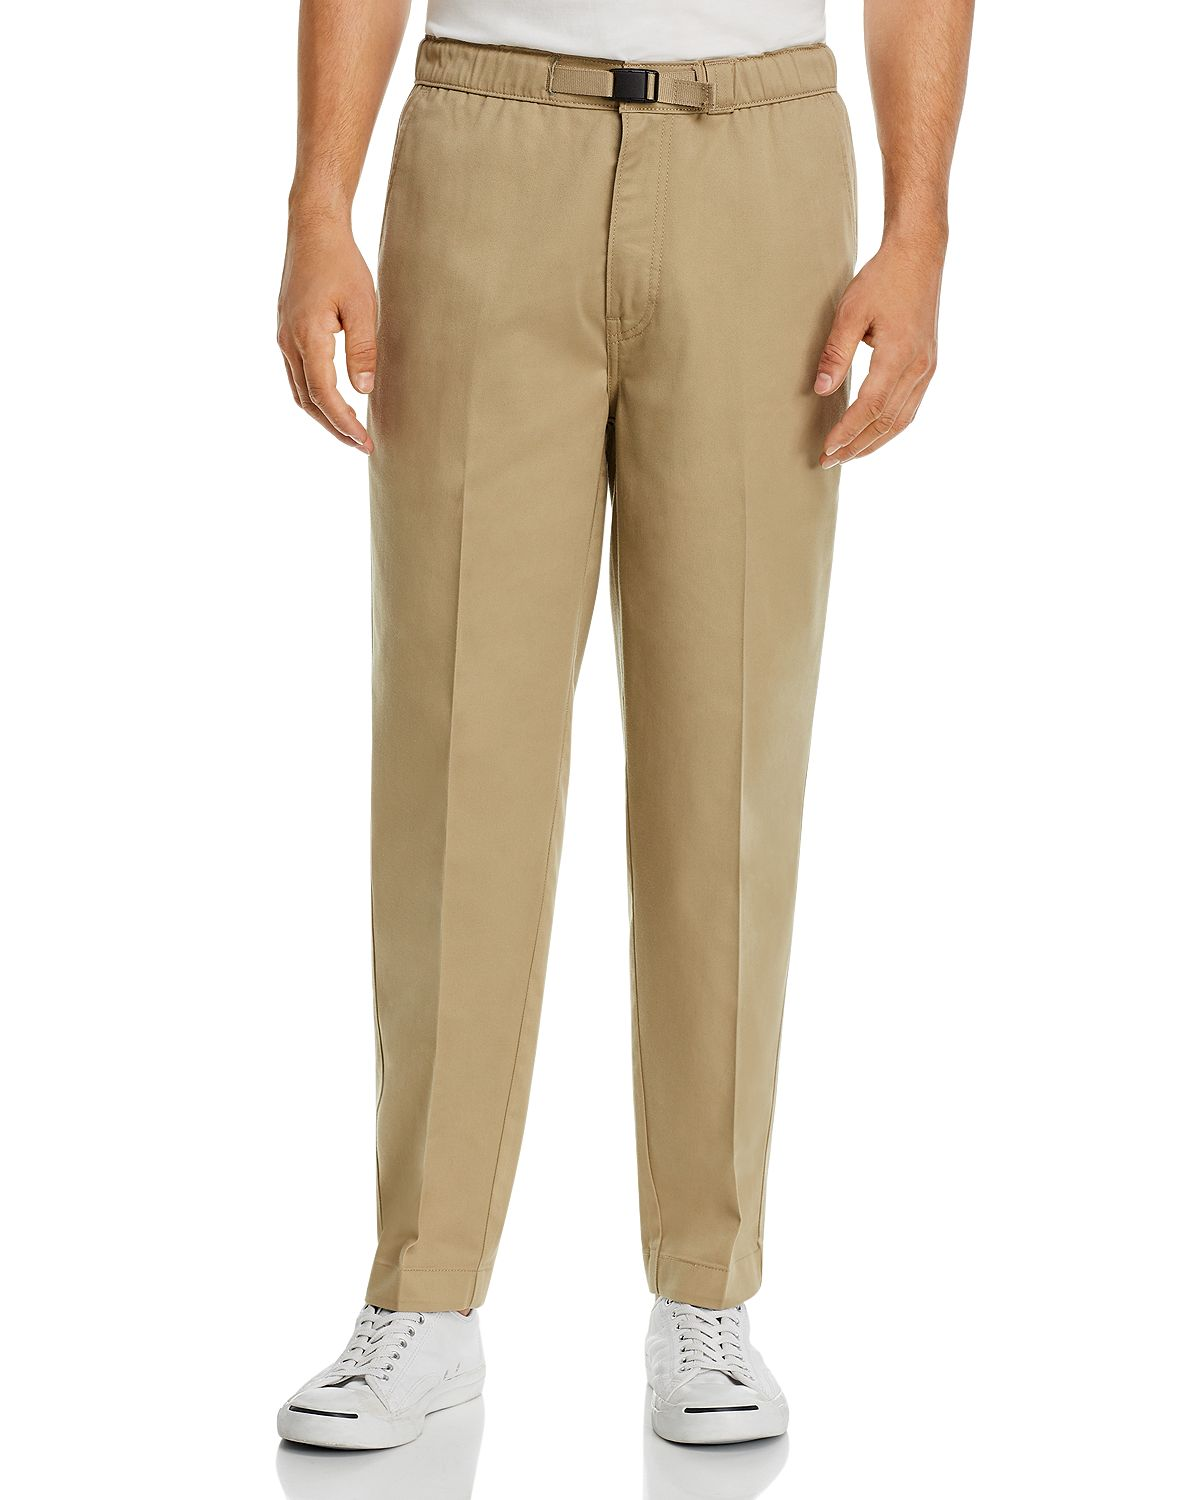 Levi's Taper True Slim Fit Chinos Khaki